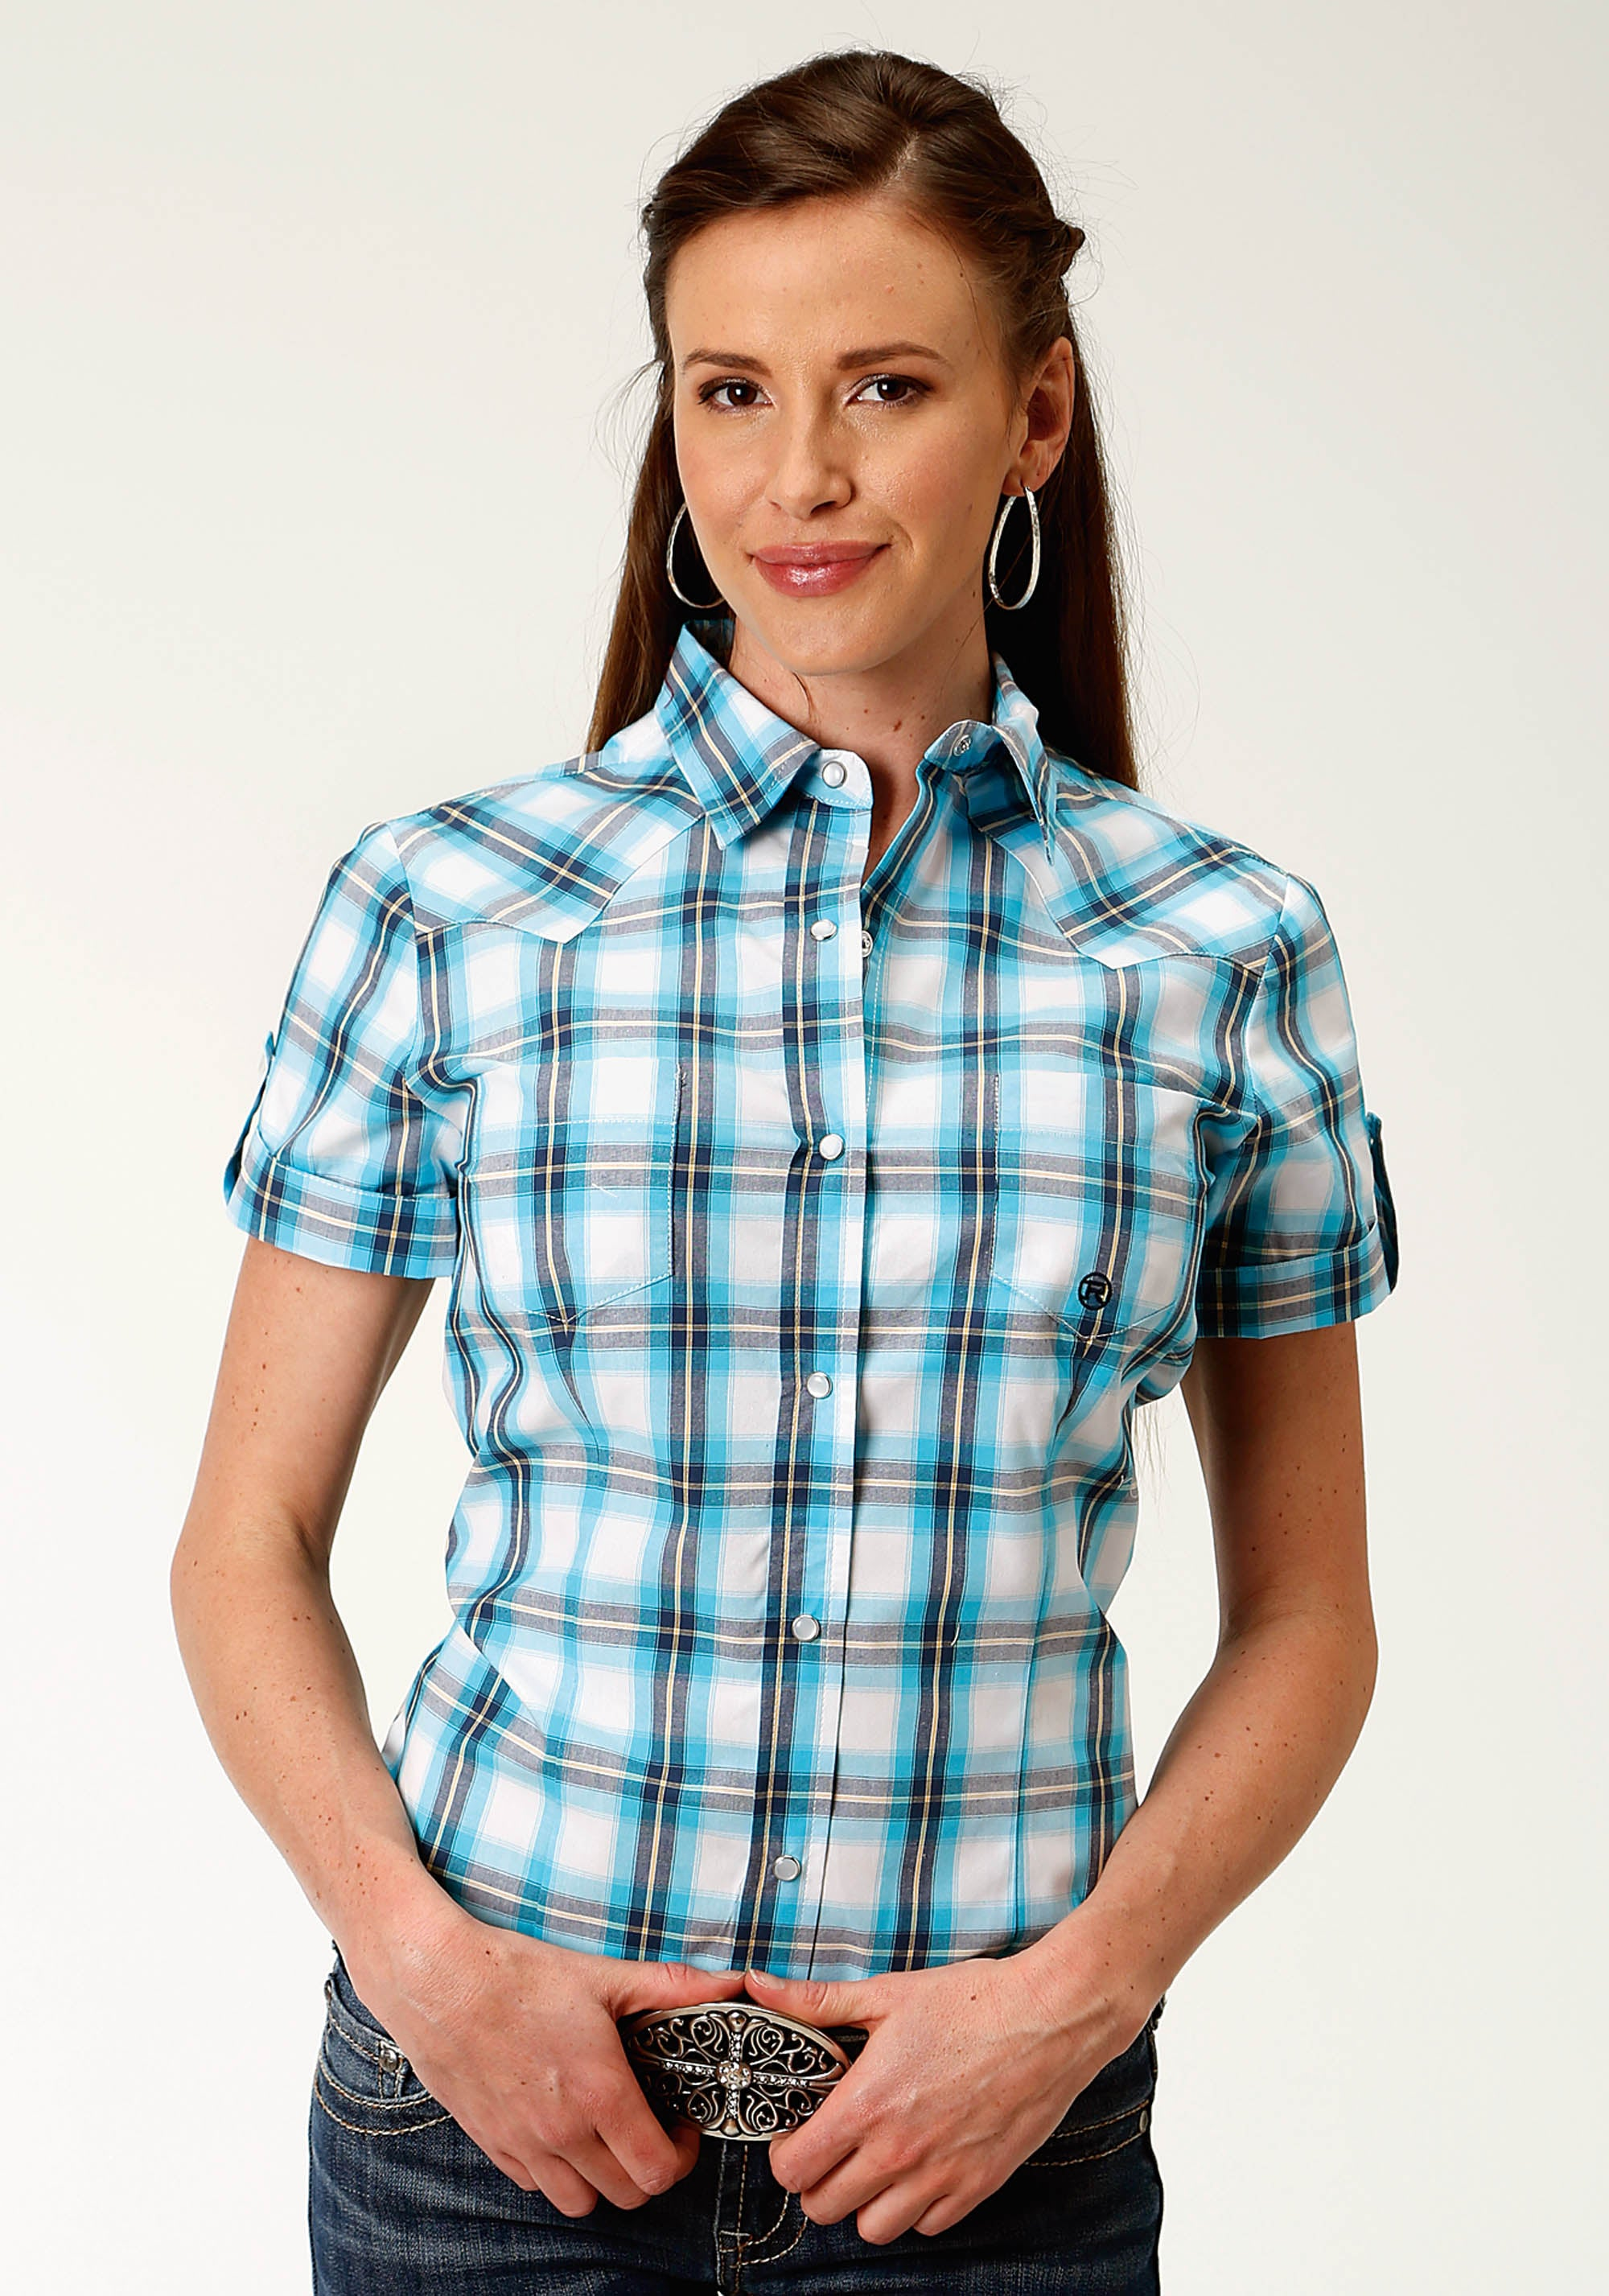 ROPER WOMENS BLUE 2450 BREEZE PLAID LADIES AMARILLO COLLECTION- CLEAR SKY SHORT SLEEVE